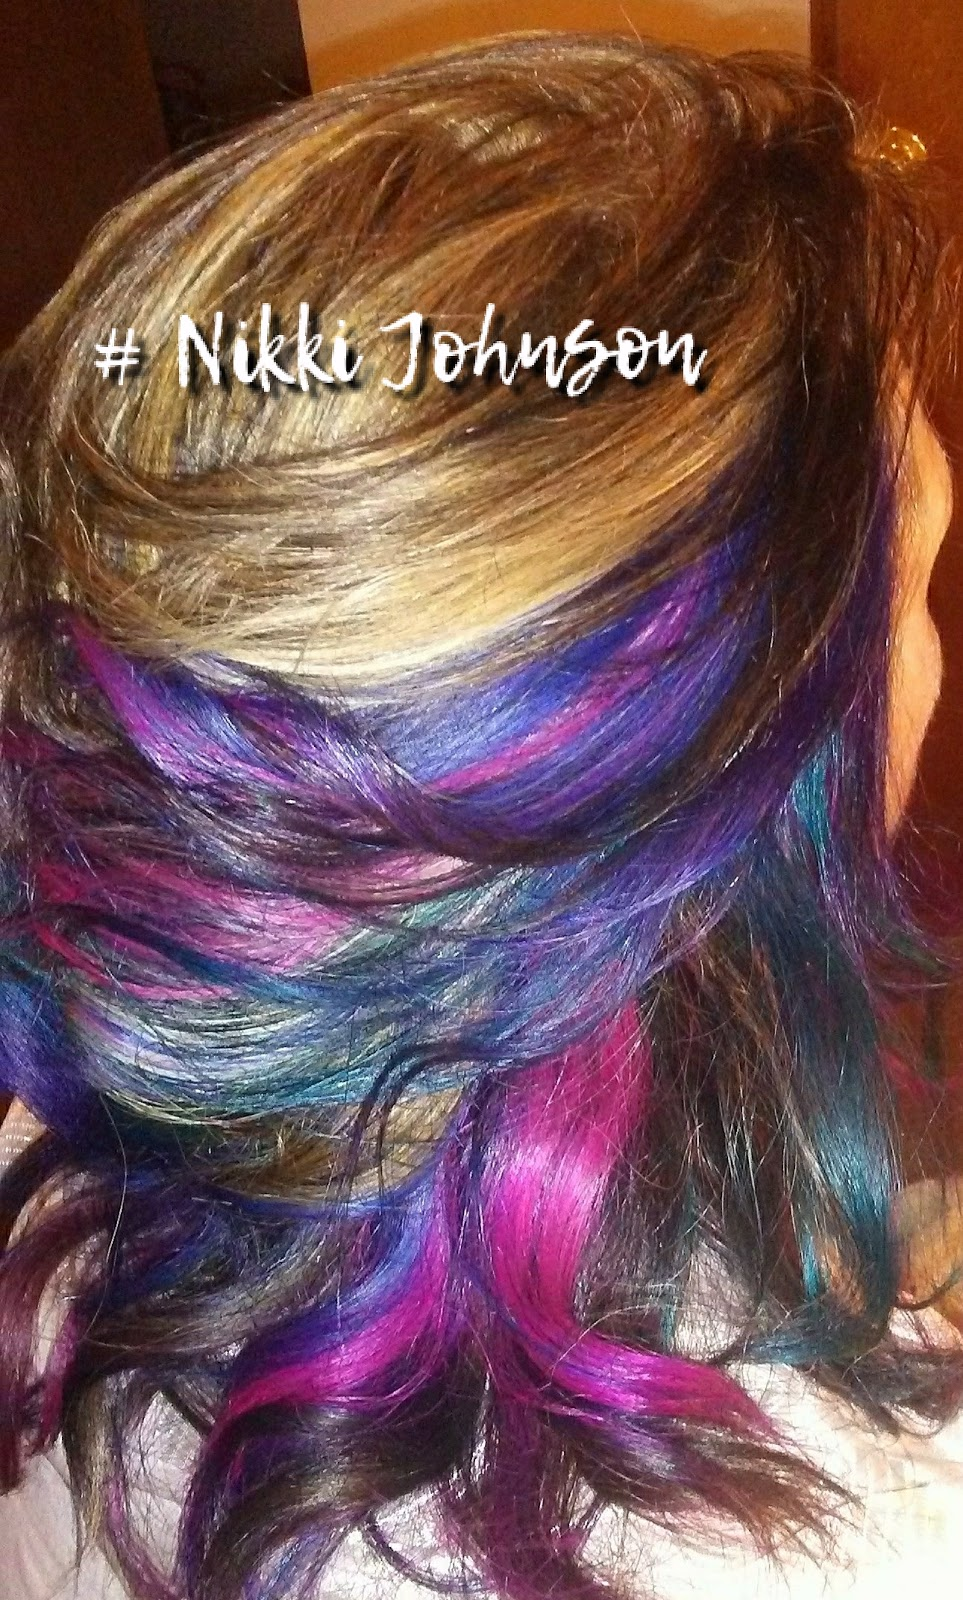 Nikki at All About You Hair Salon and Tanning - hair care    Photo 8 of 10   Address: 9075 1200 N, De Motte, IN 46310, USA   Phone: (765) 761-7119